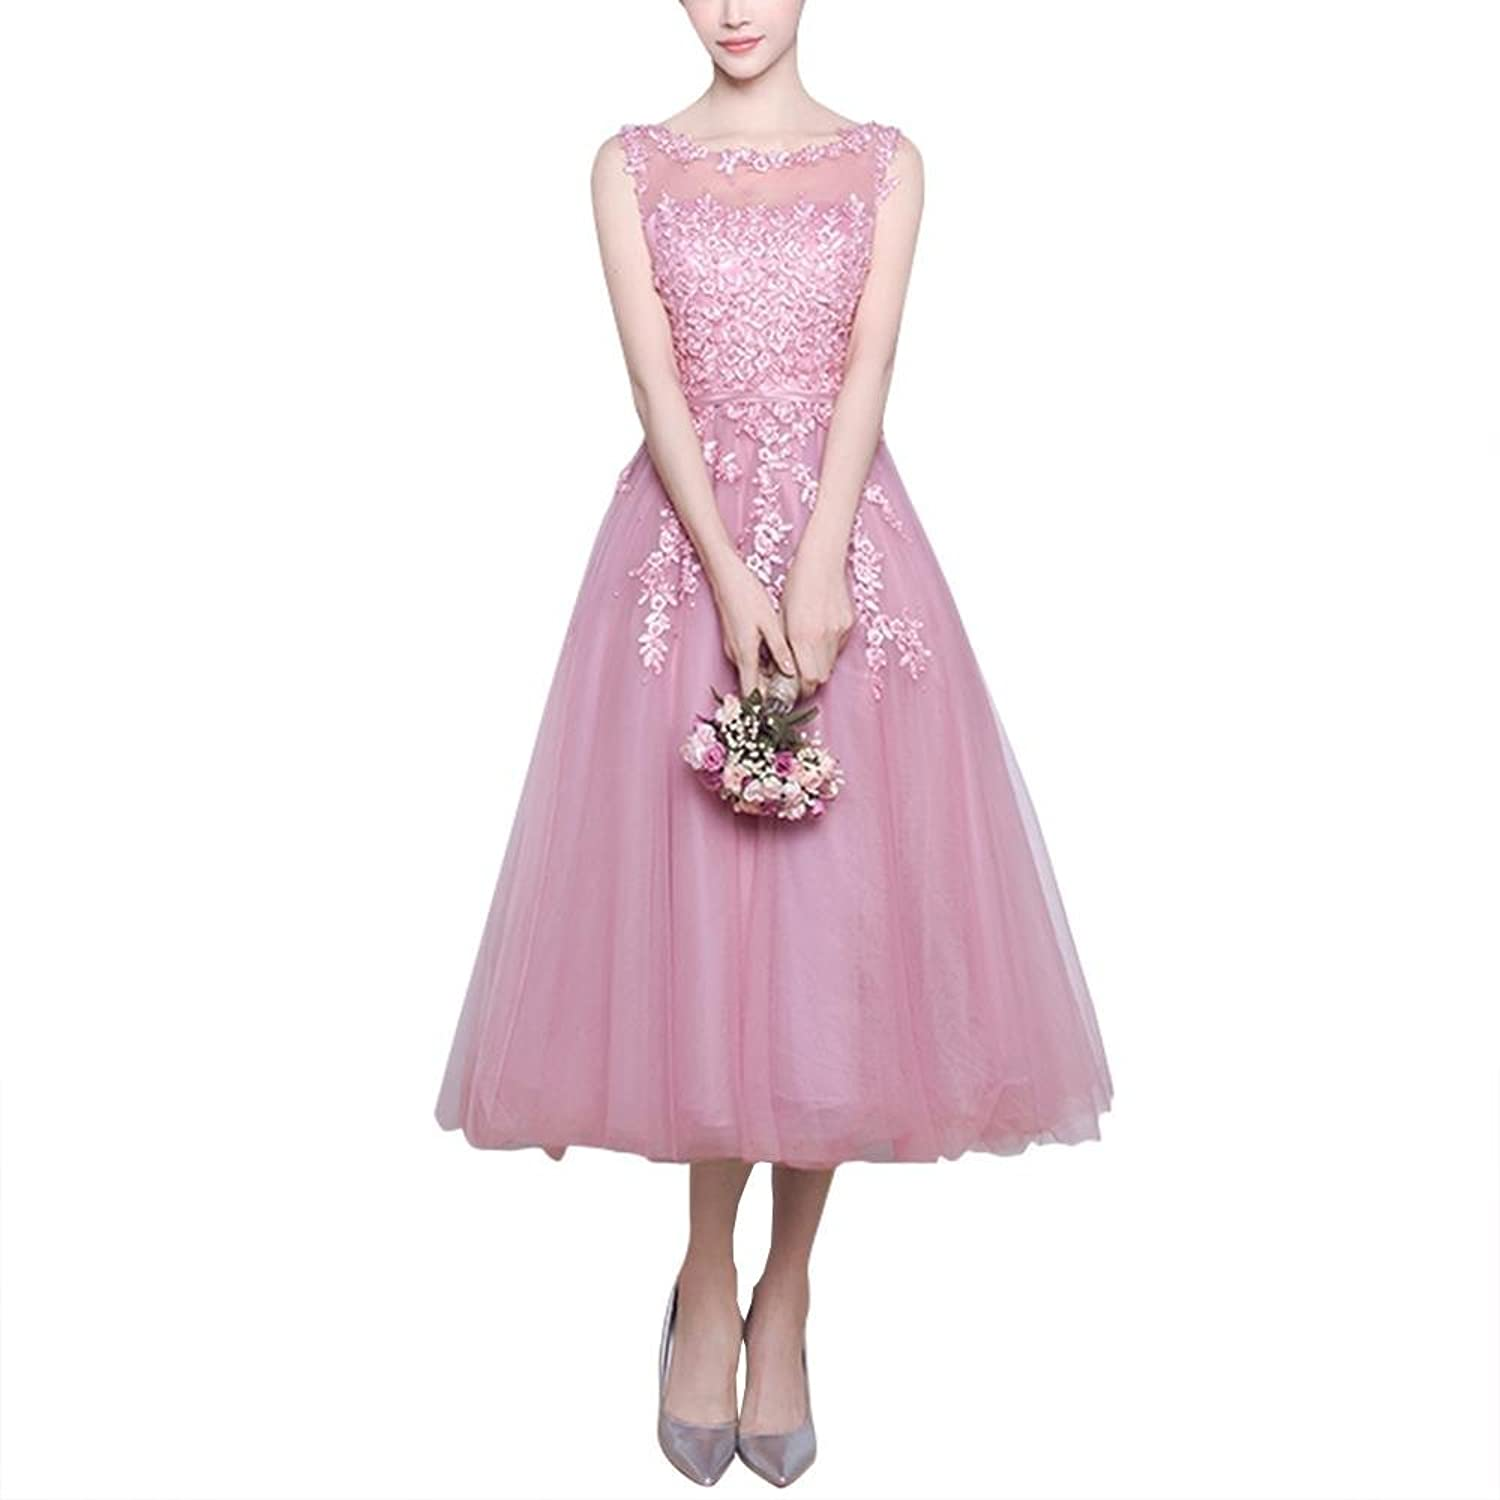 TrentDresses Women's A-line Tea Lengrh Organza Prom Dress